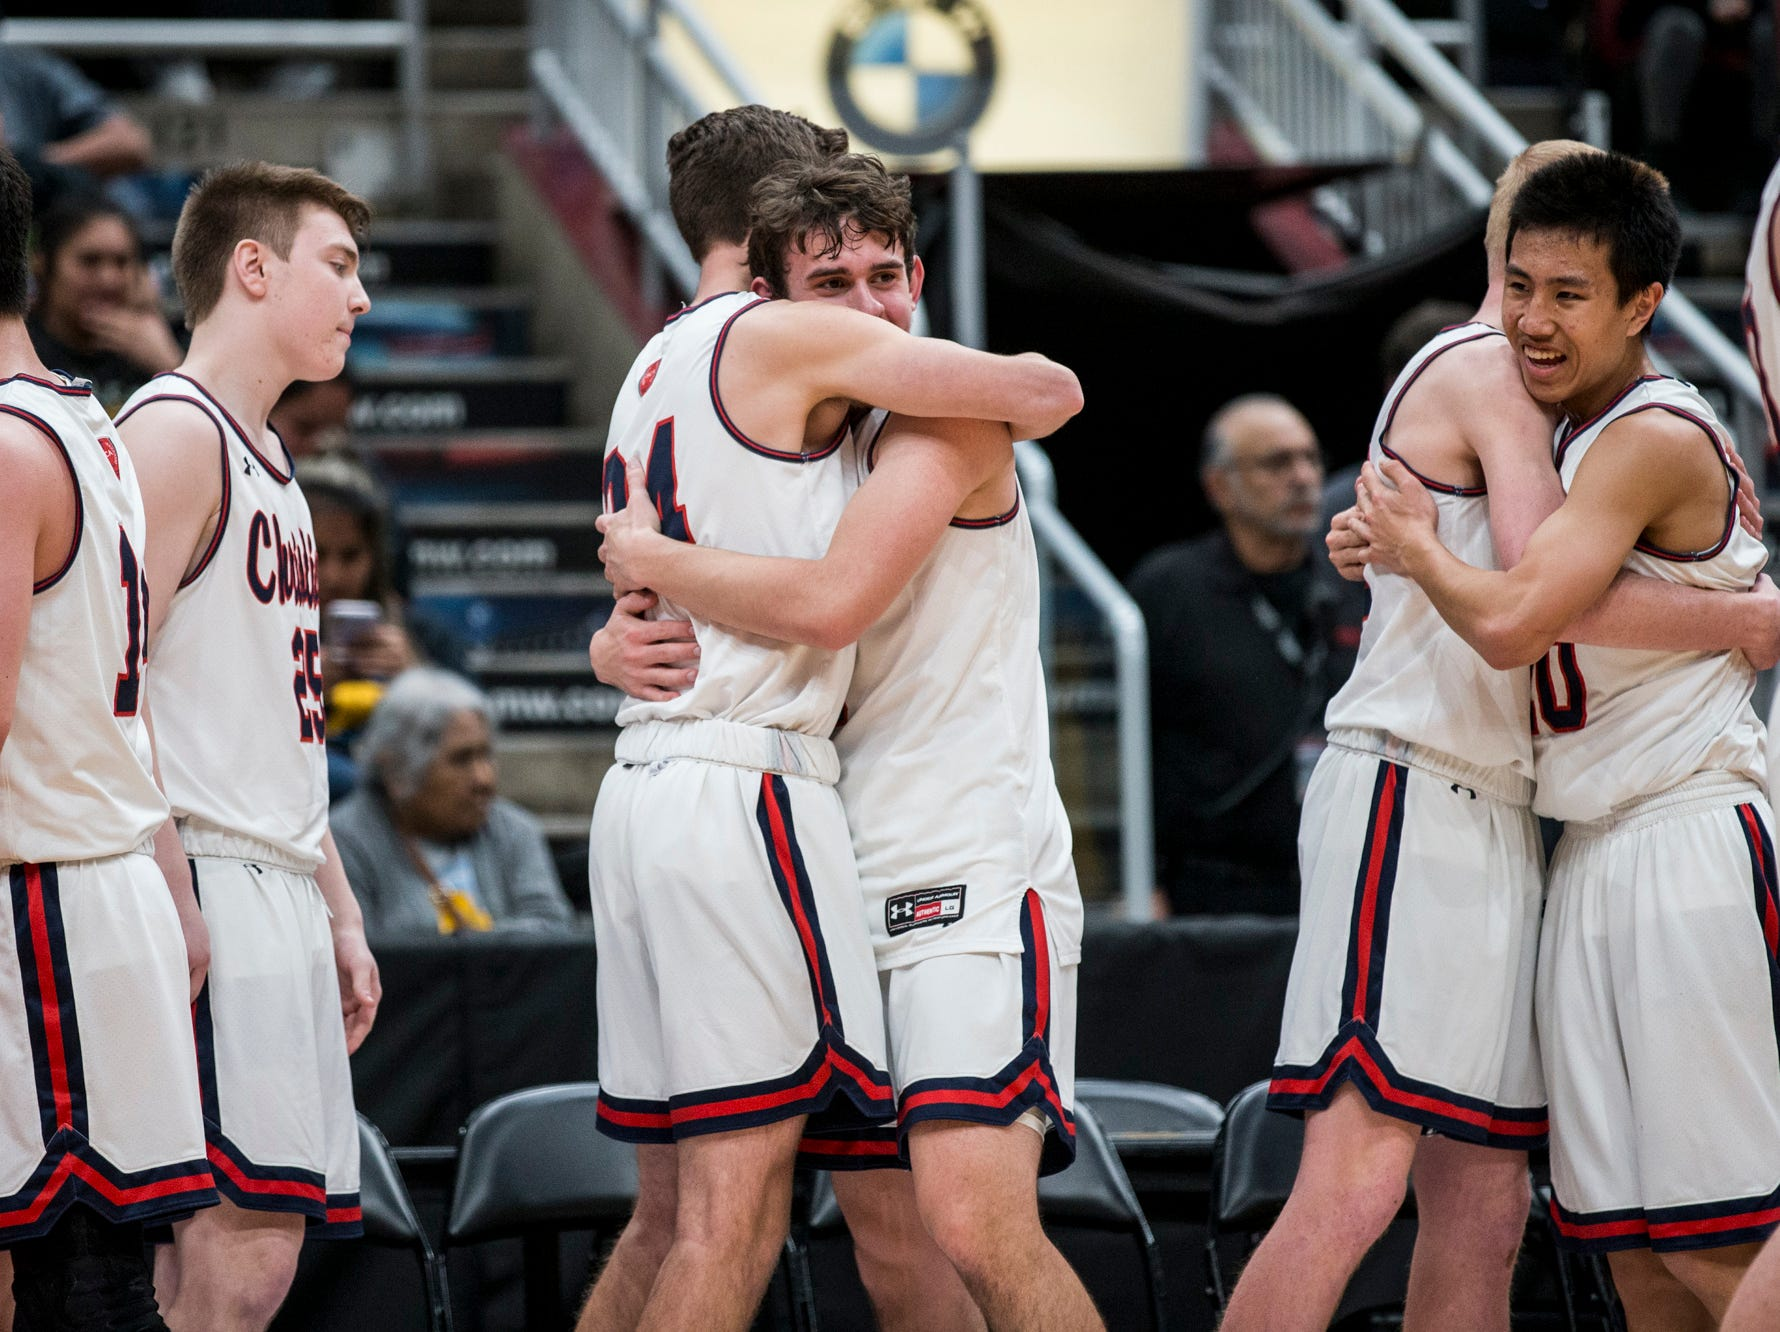 Scottsdale Christian celebrates before defeating Alchesay for the 2A boys basketball championship on Saturday, Feb. 23, 2019, at Gila River Arena in Glendale, Ariz.